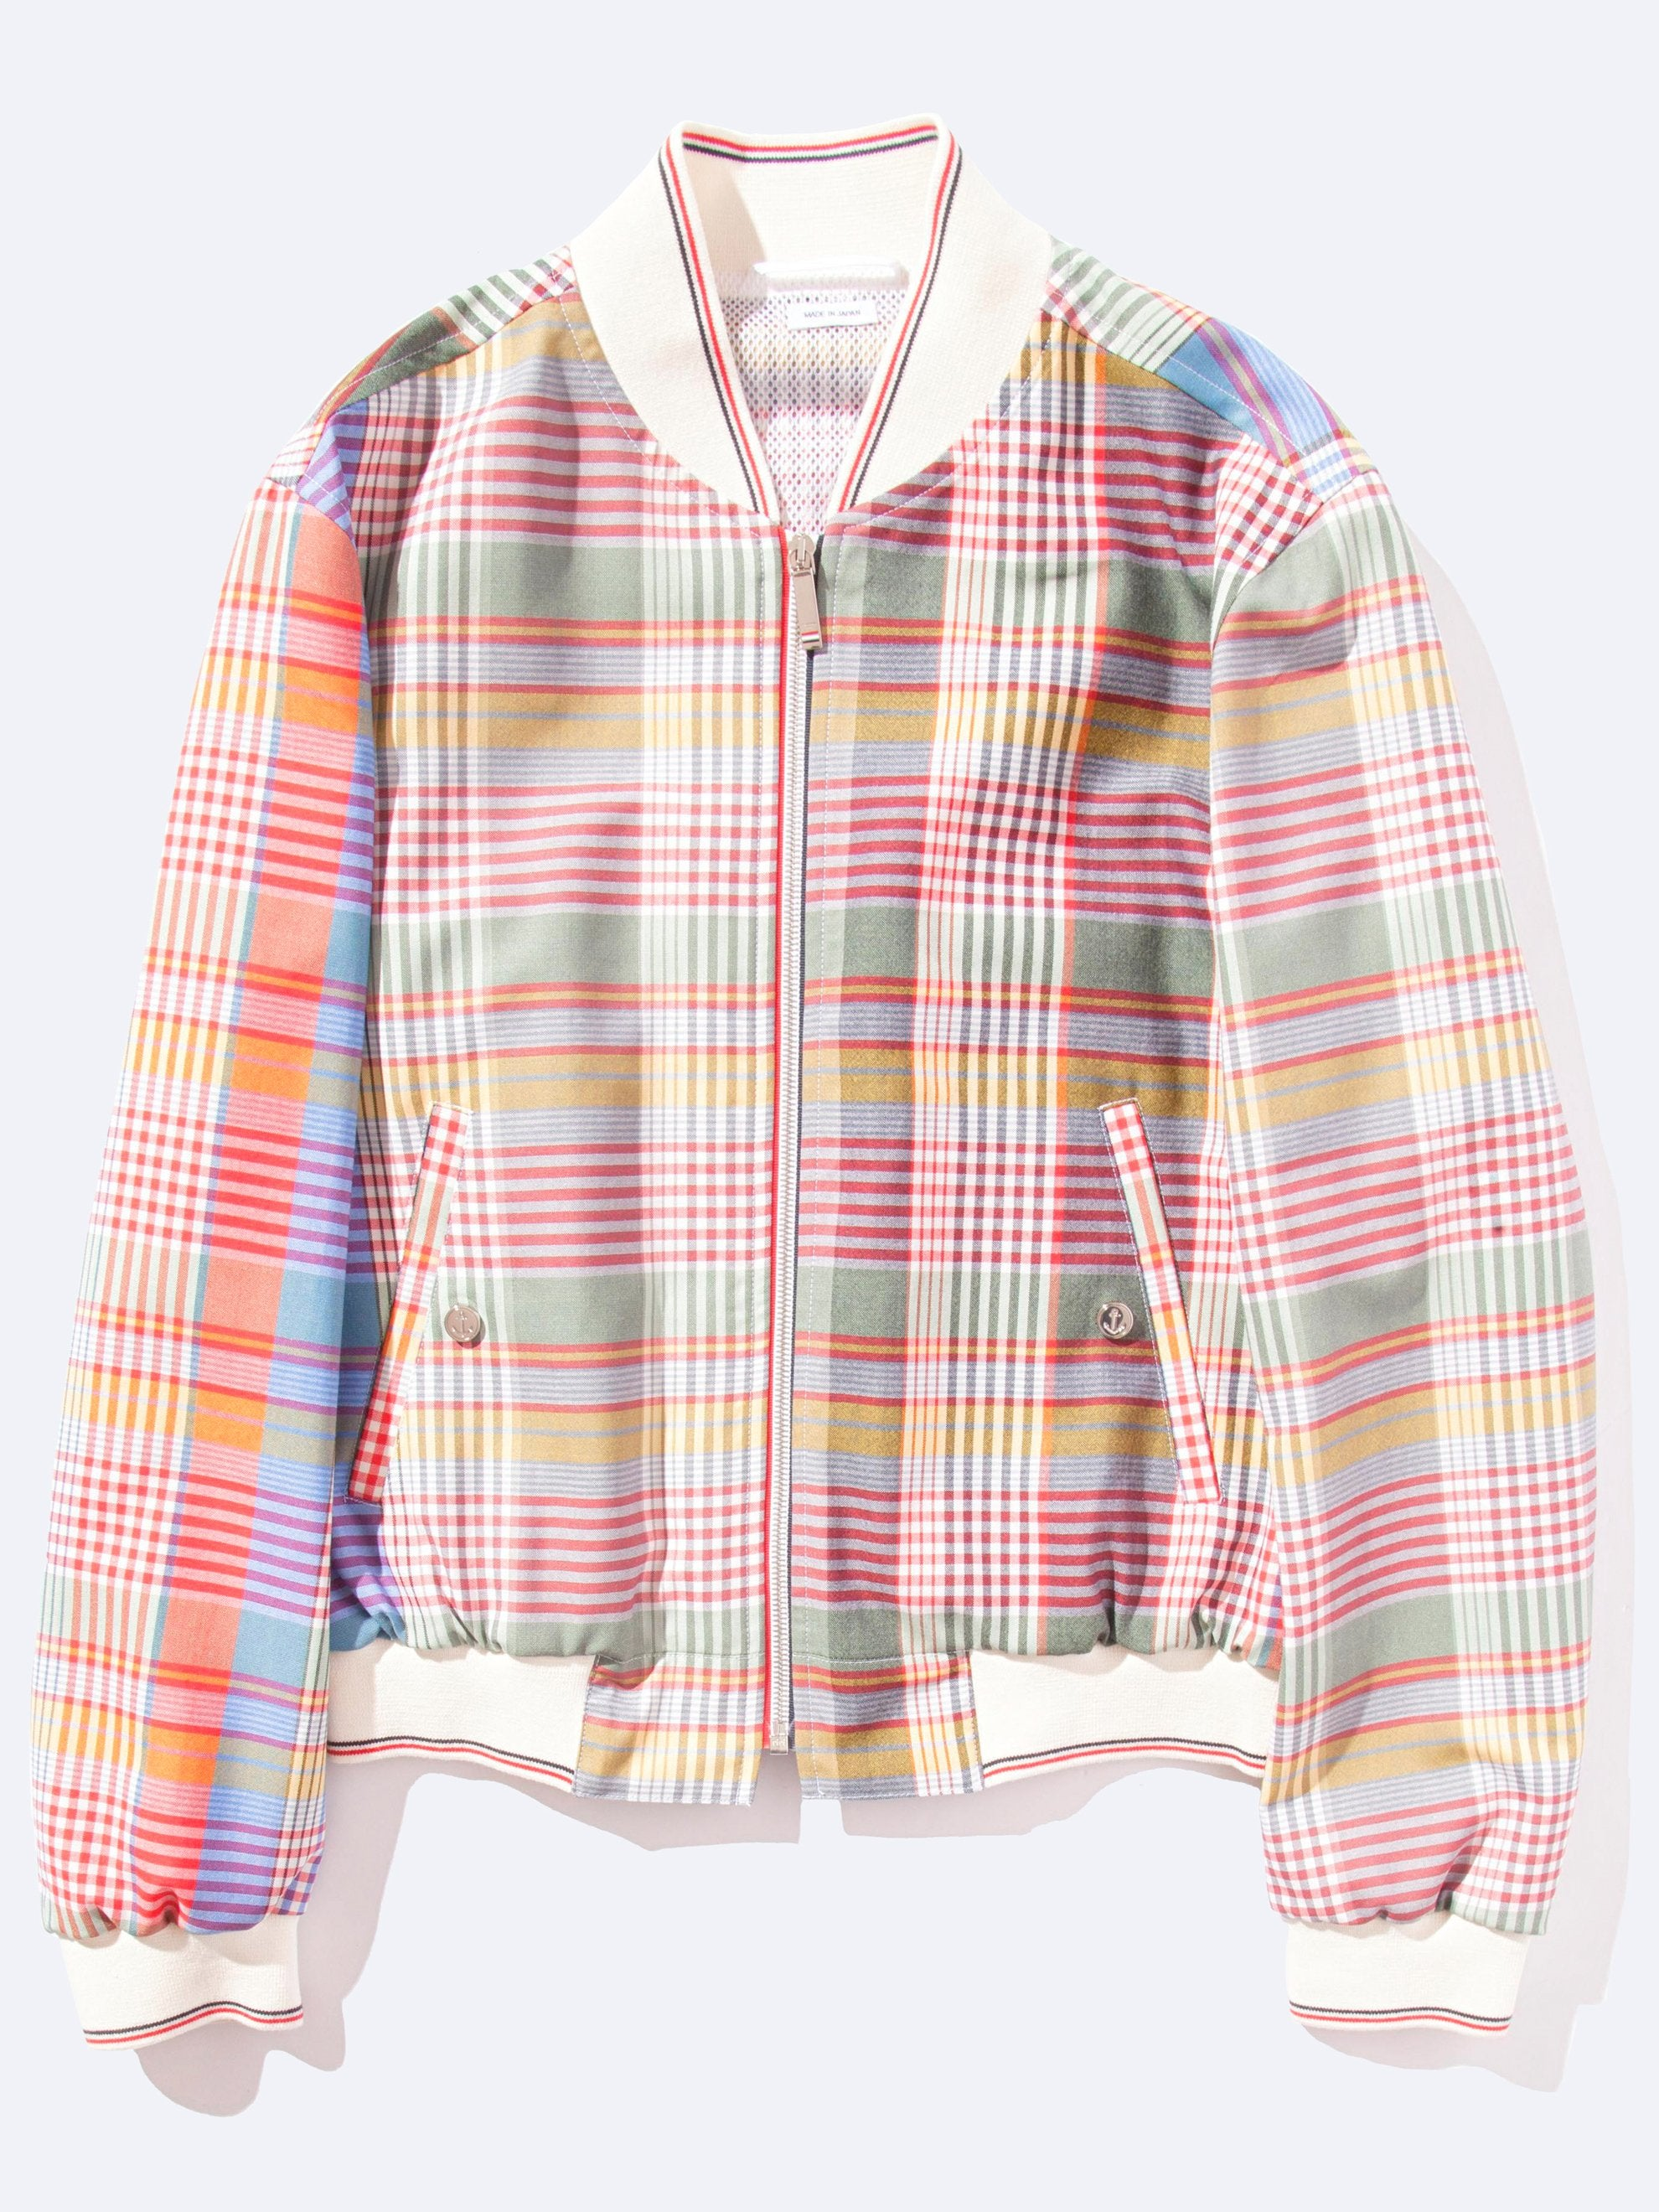 Fun Mix Zip front Blouson Storm Flap Jacket (Madras Check Wool Suiting) 1